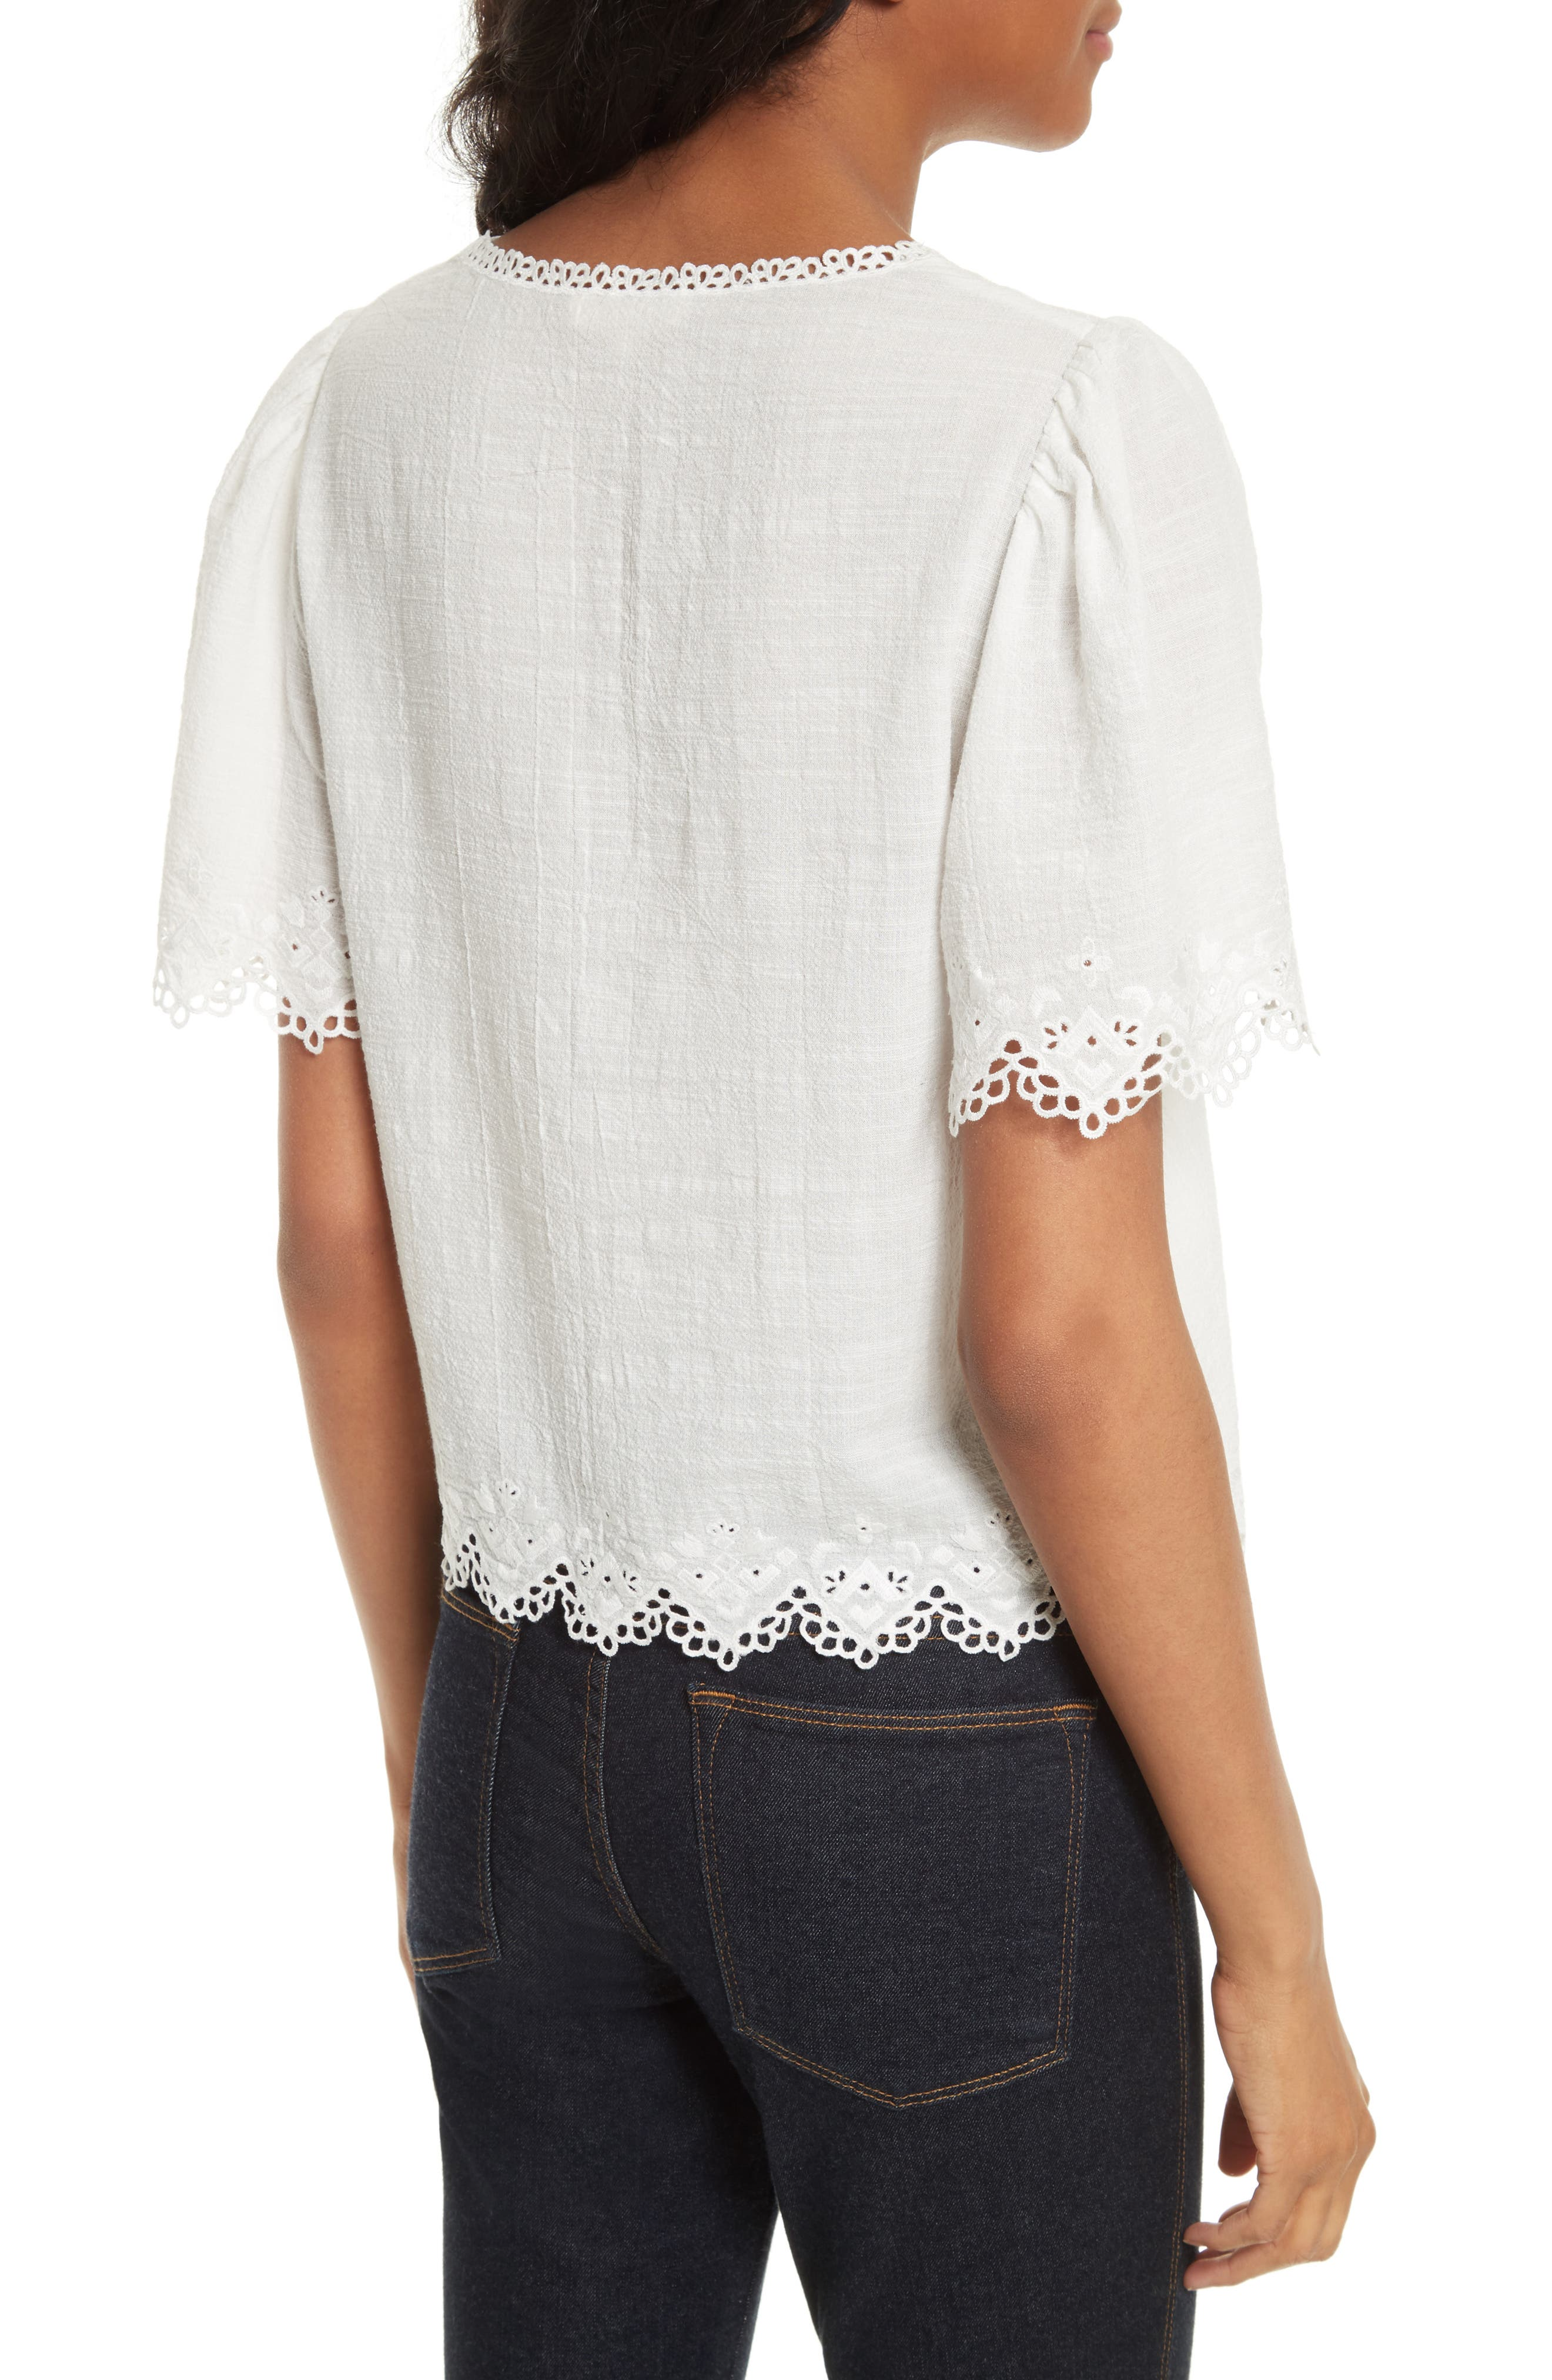 Amore Embroidered Top,                             Alternate thumbnail 2, color,                             106